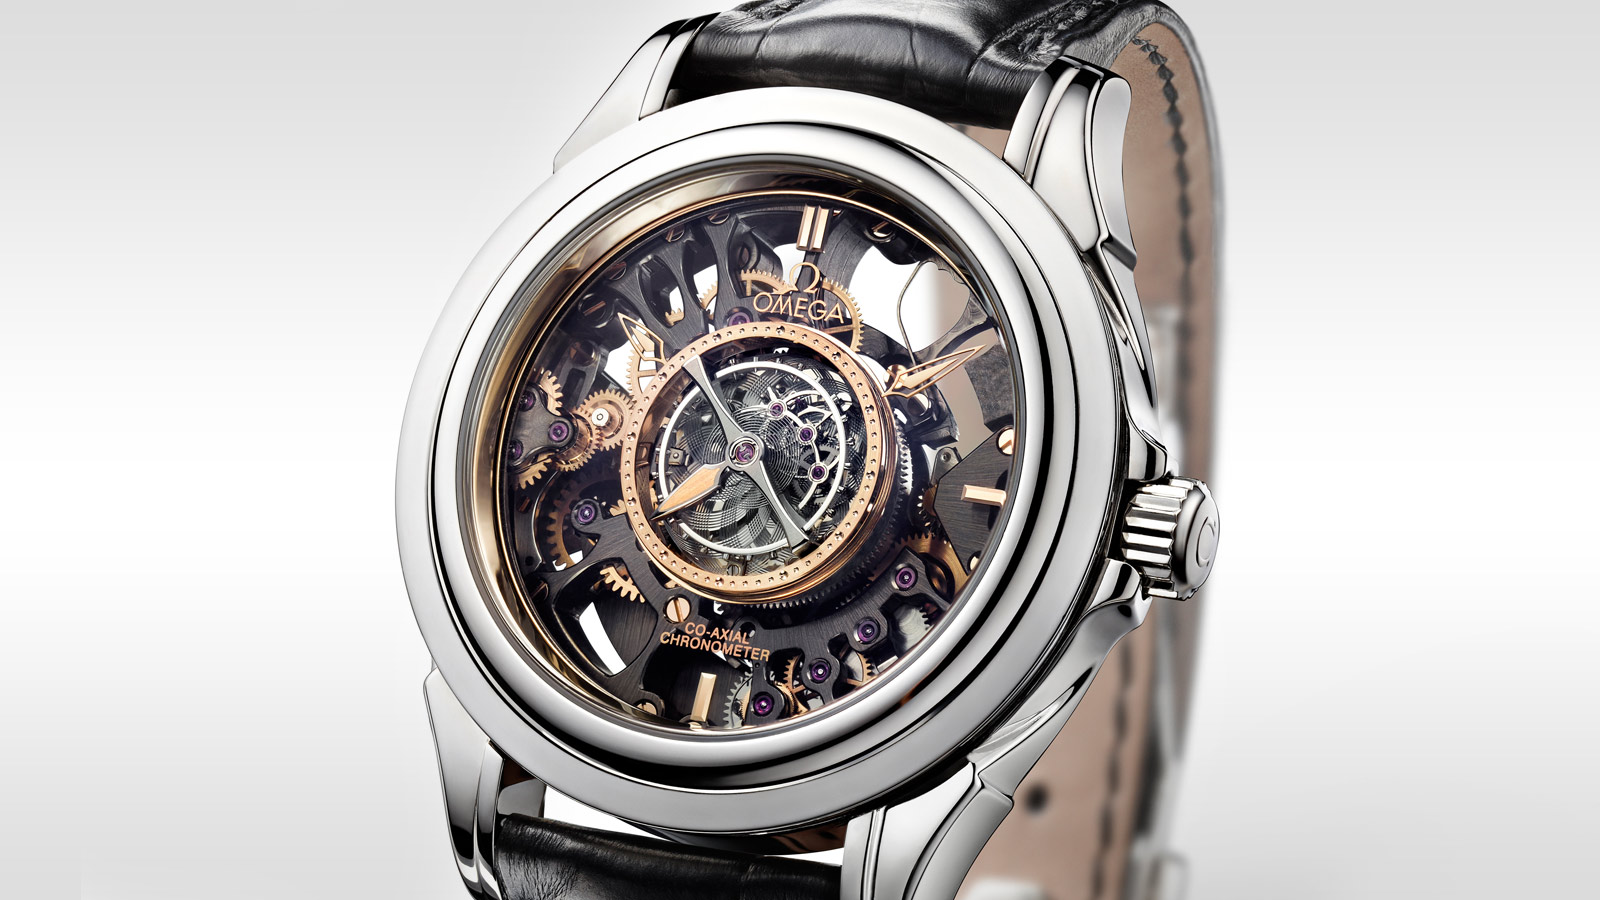 De Ville TOURBILLON Tourbillon Co‑Axial Limitierte Edition 38,7 mm - 513.93.39.21.99.001 - Anzeigen 3